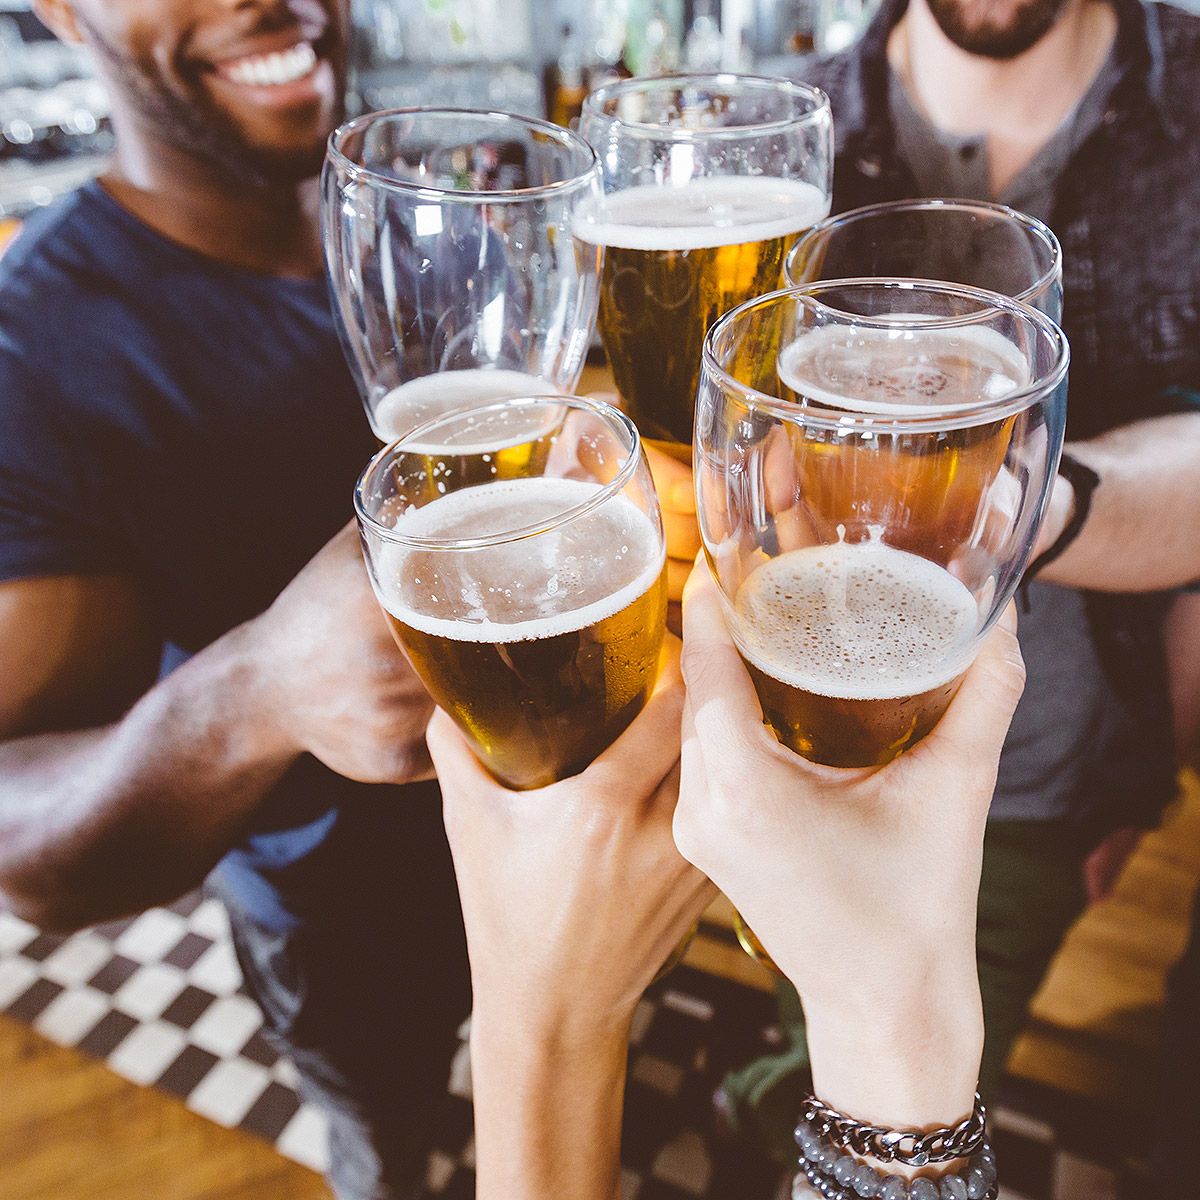 Group of friends hanging out and cheersing beers to celebrate friendship